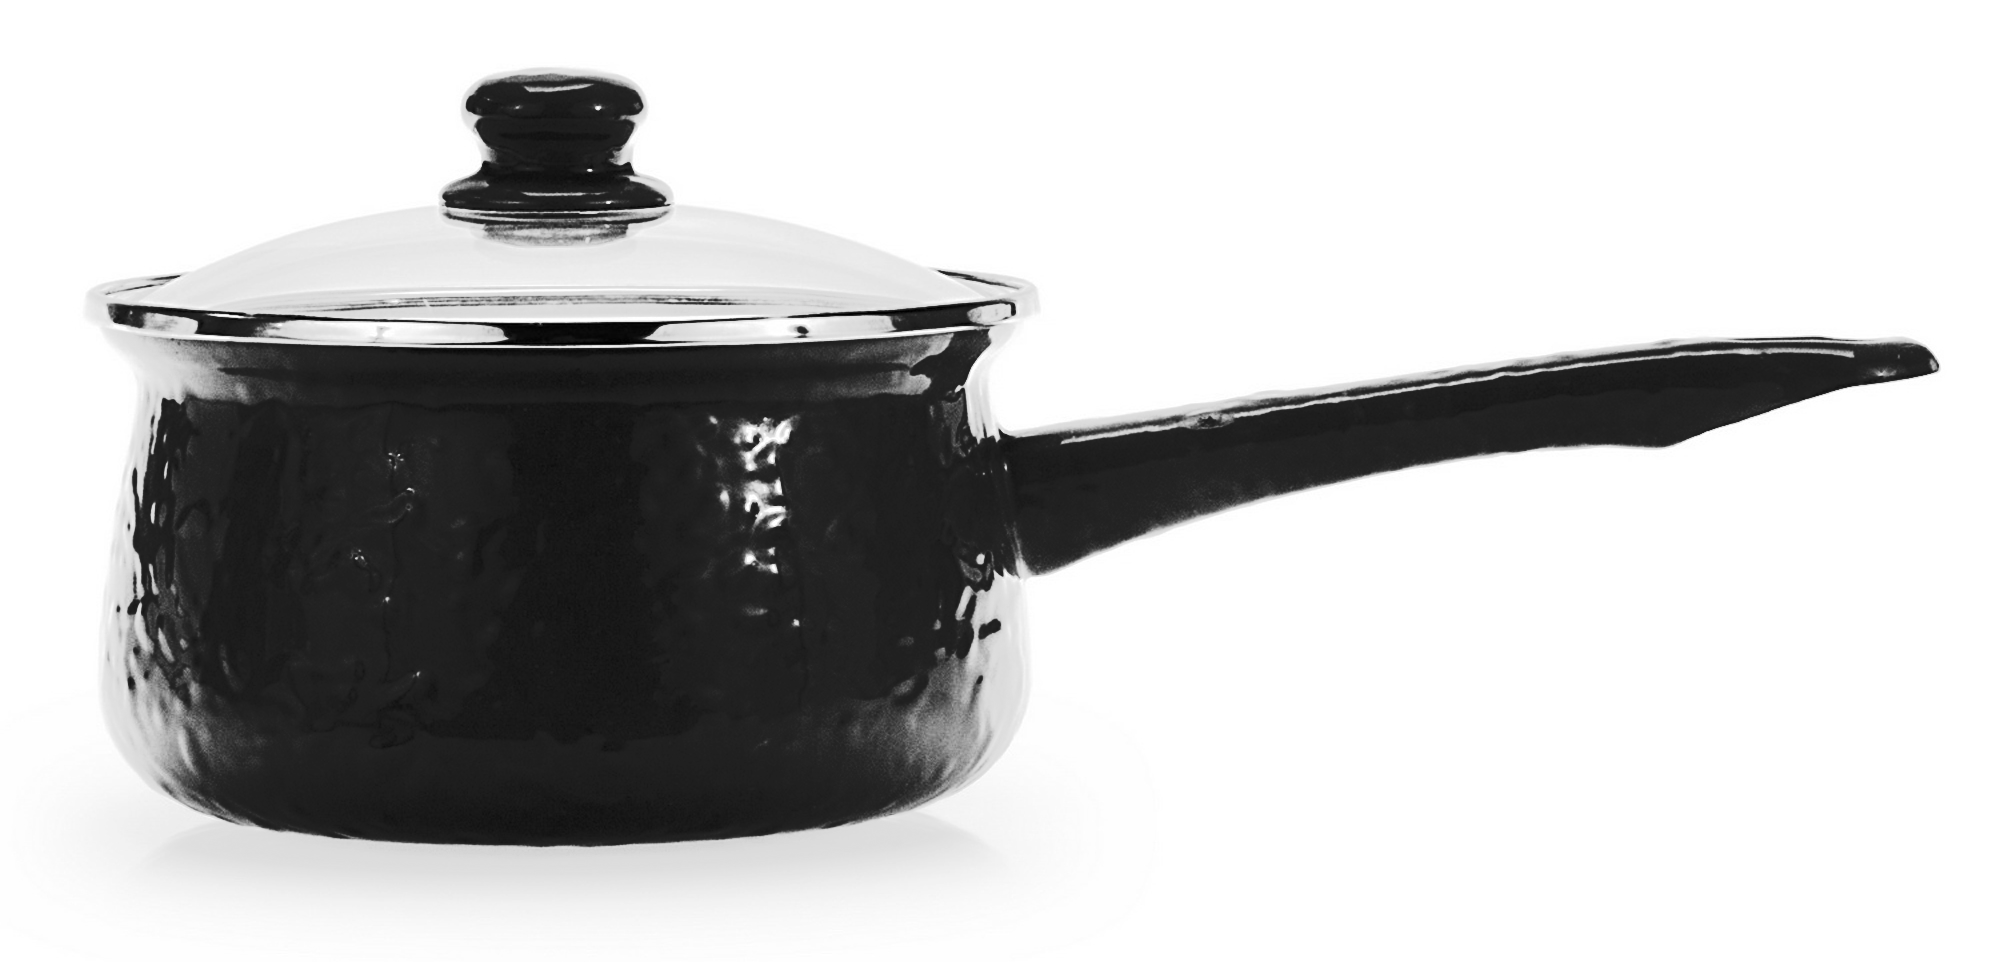 BK19 - Black on Black - 5 Cup Small Sauce Pan by Golden Rabbit